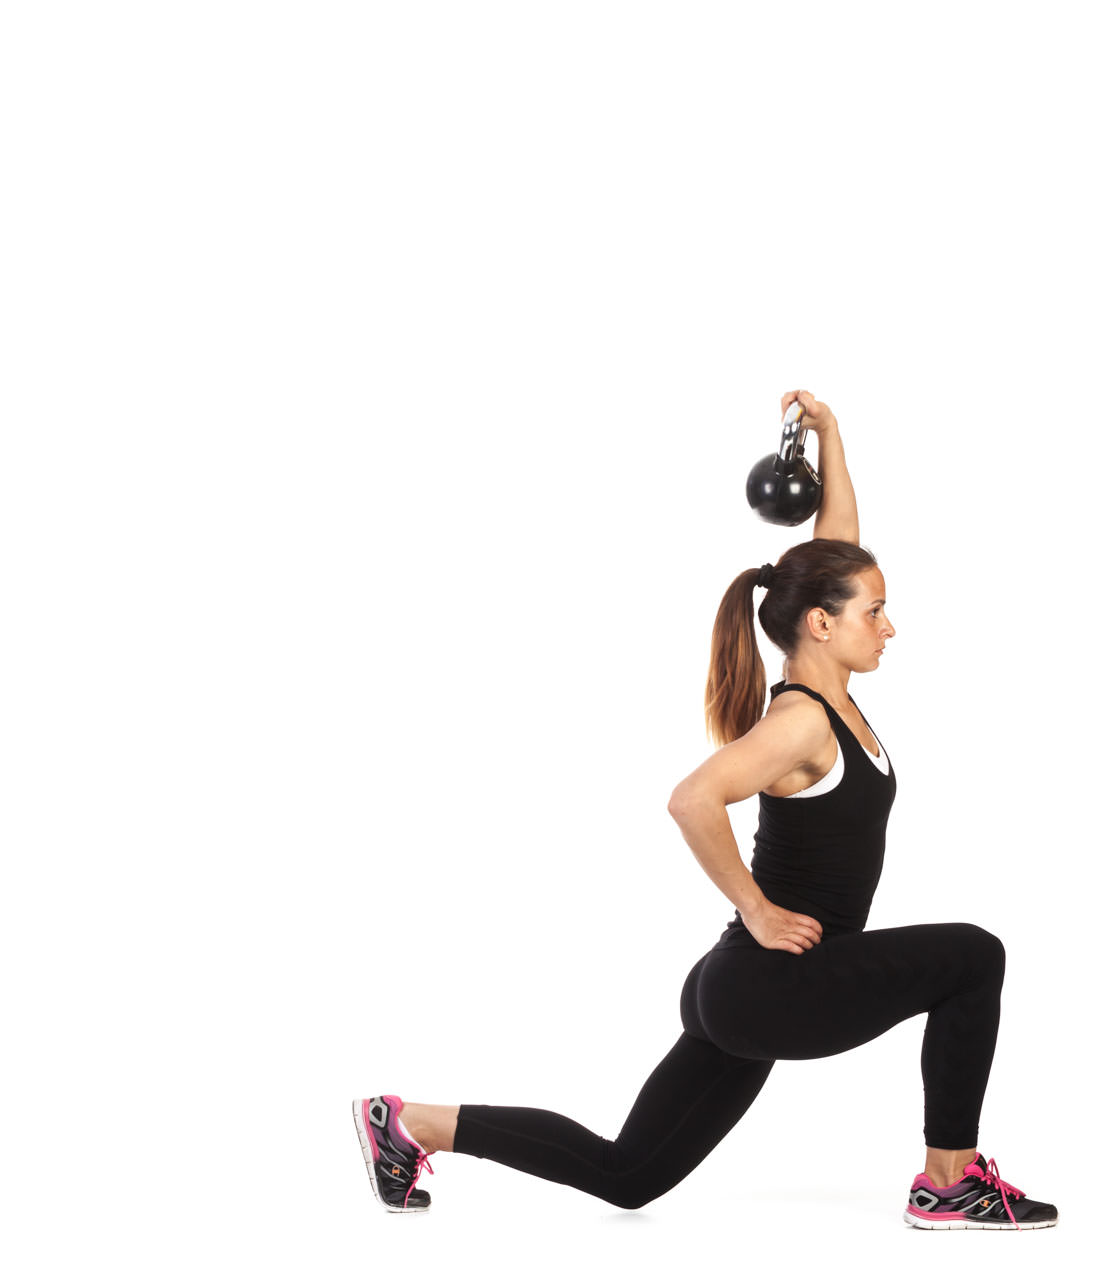 One-Arm Kettlebell Lunge frame #2